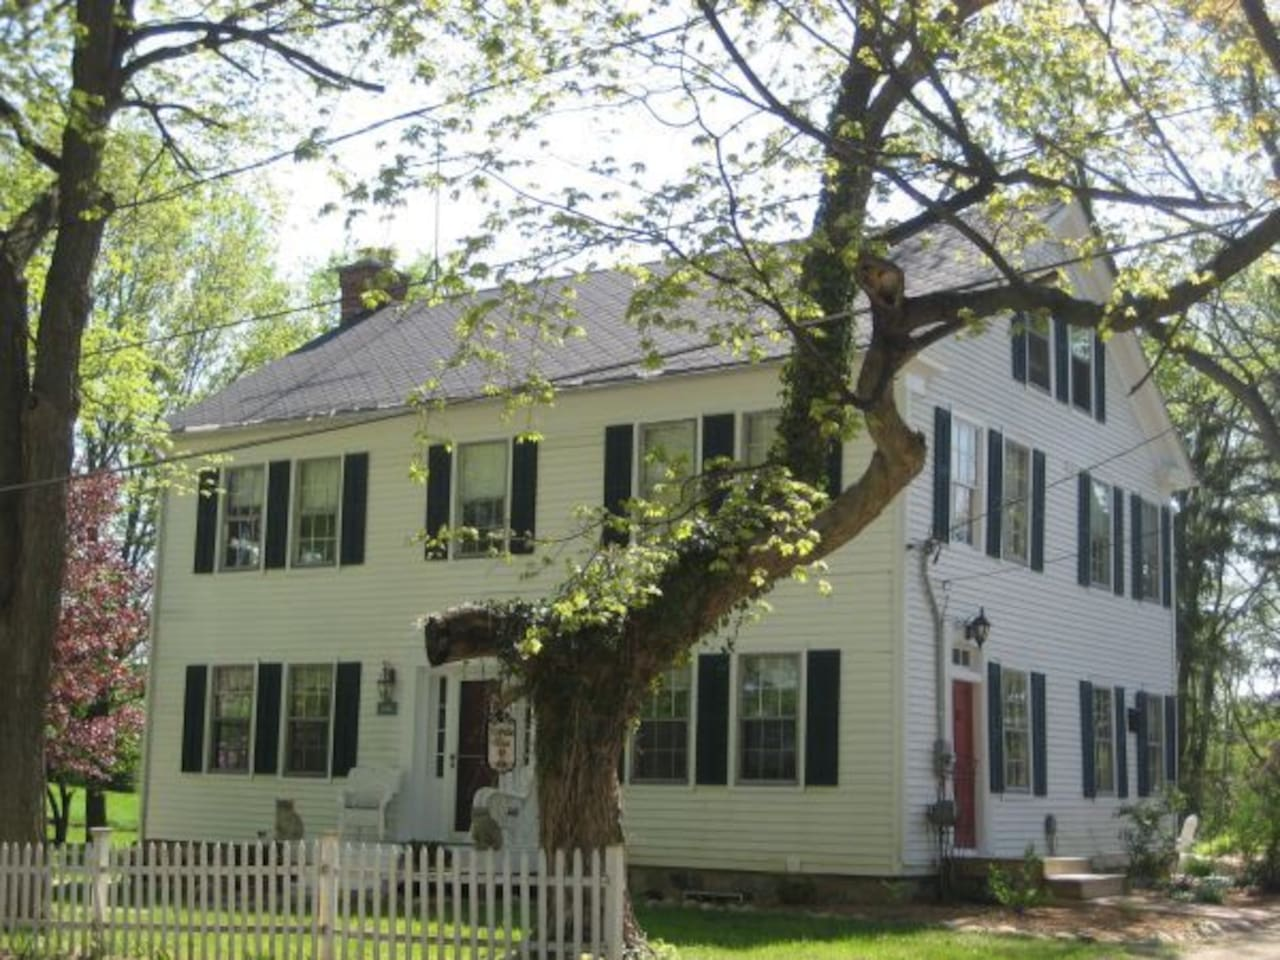 Built in 1832, this home was originally built and used as a boarding house.